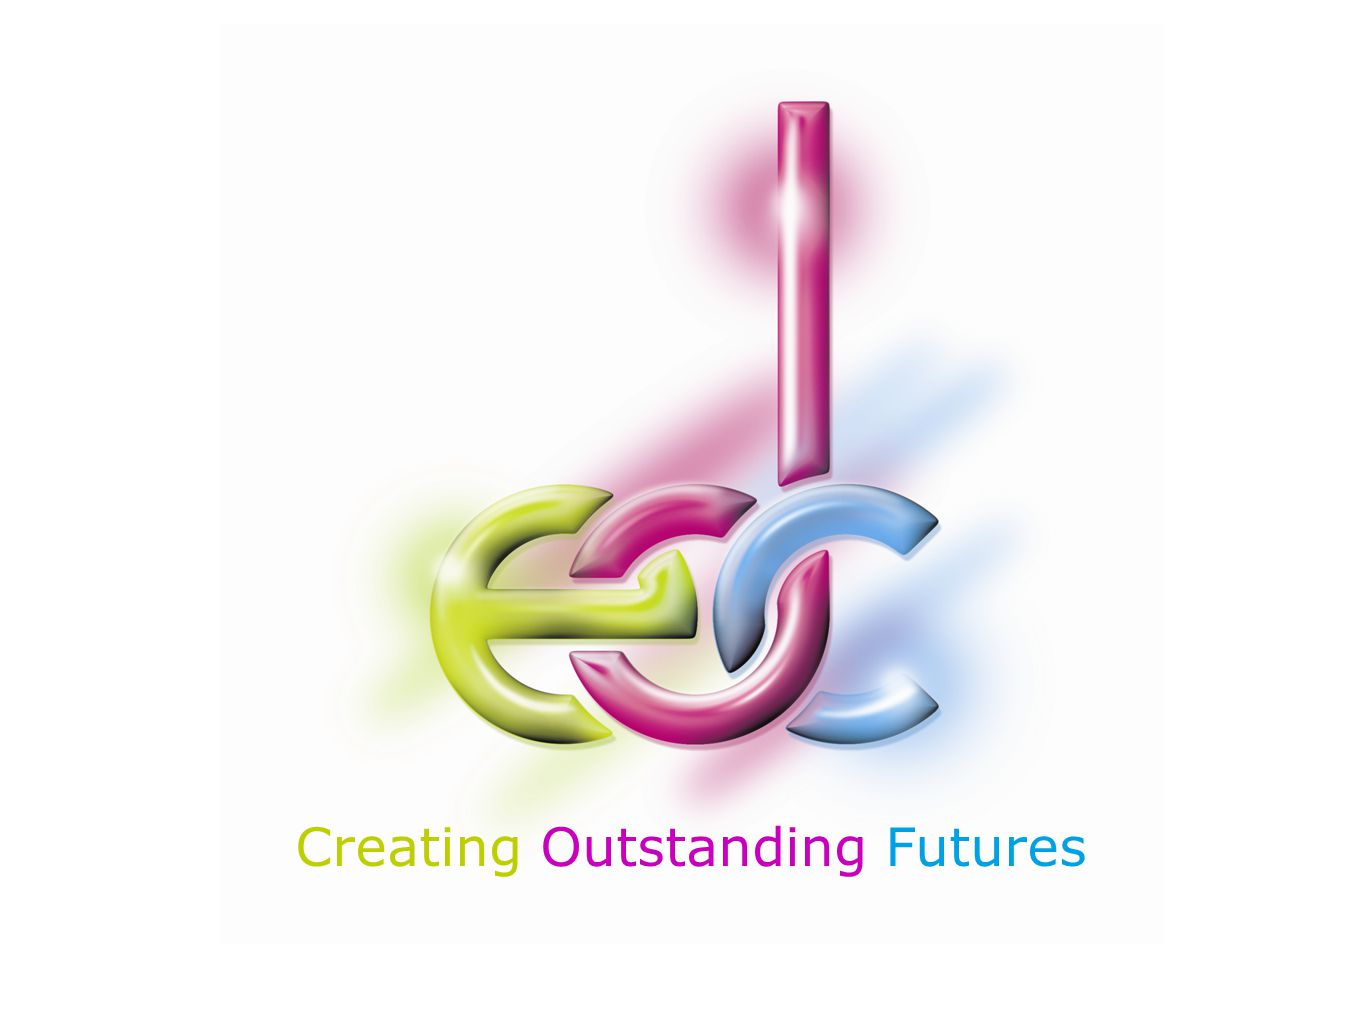 Creating Outstanding Futures